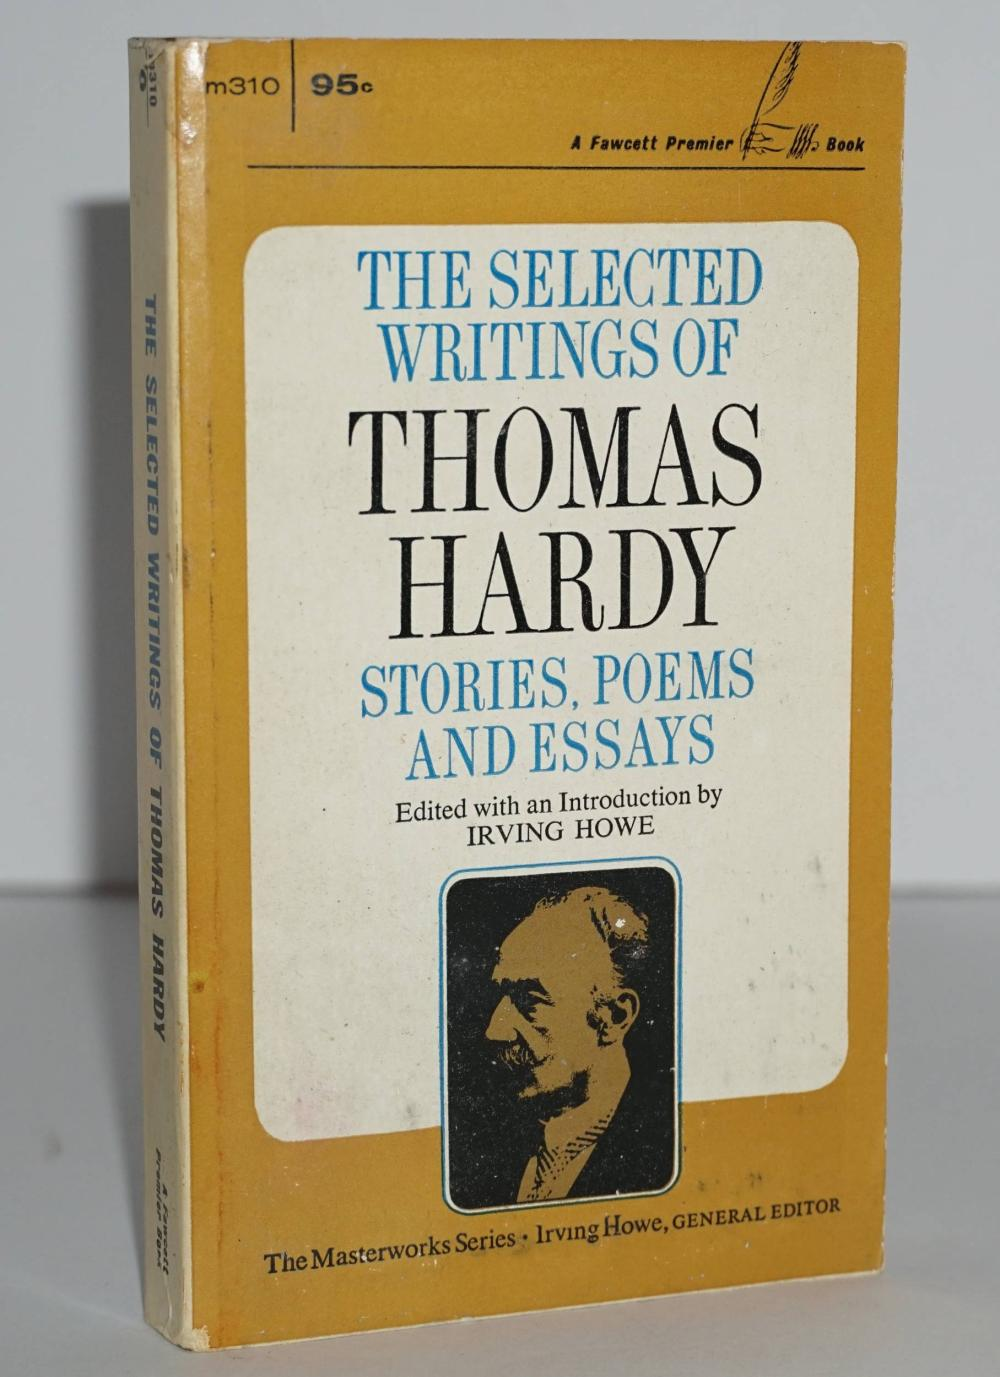 """Kerouac Personally Owned Book """"The Selected Writings of Thomas Hardy"""" with Estate Provenance"""